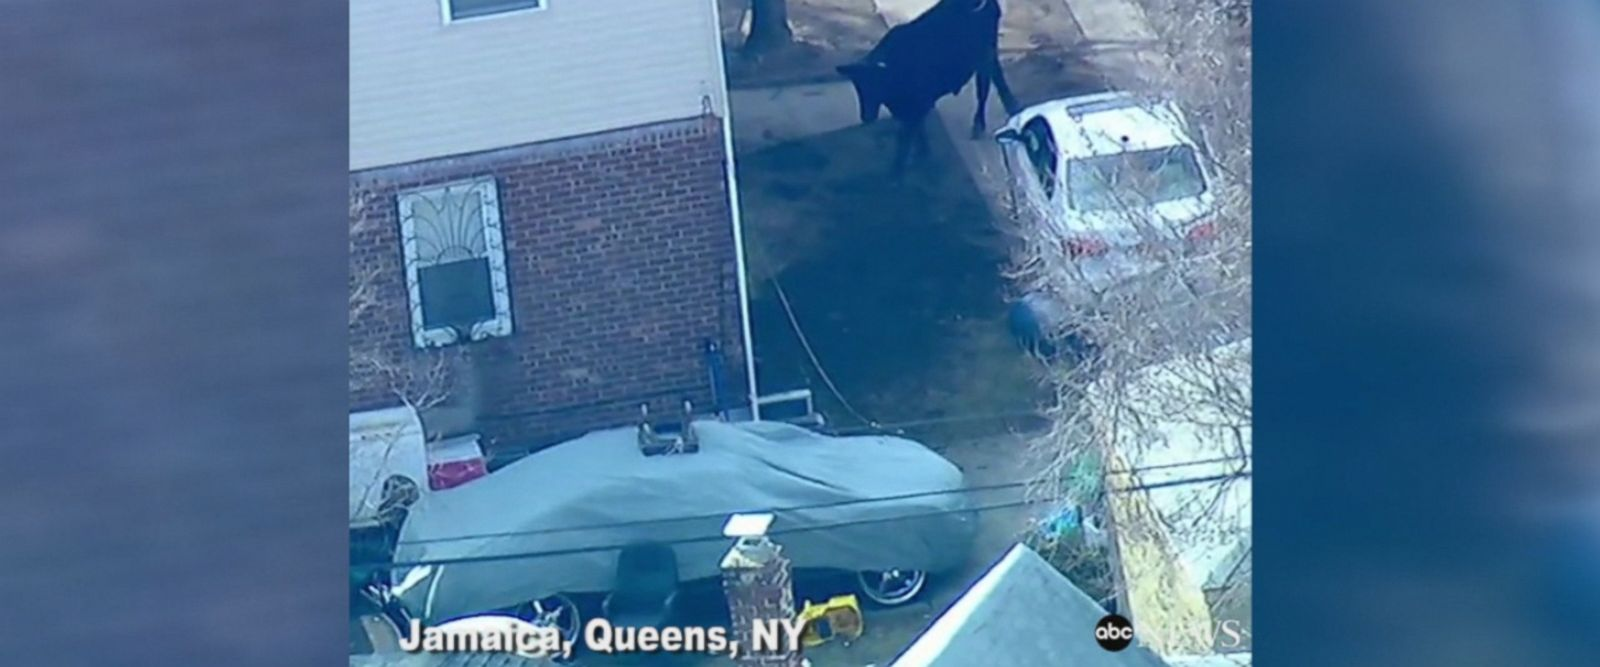 Police chased a runaway cow who was milking his 15 seconds of fame in Jamaica, Queens, New York.